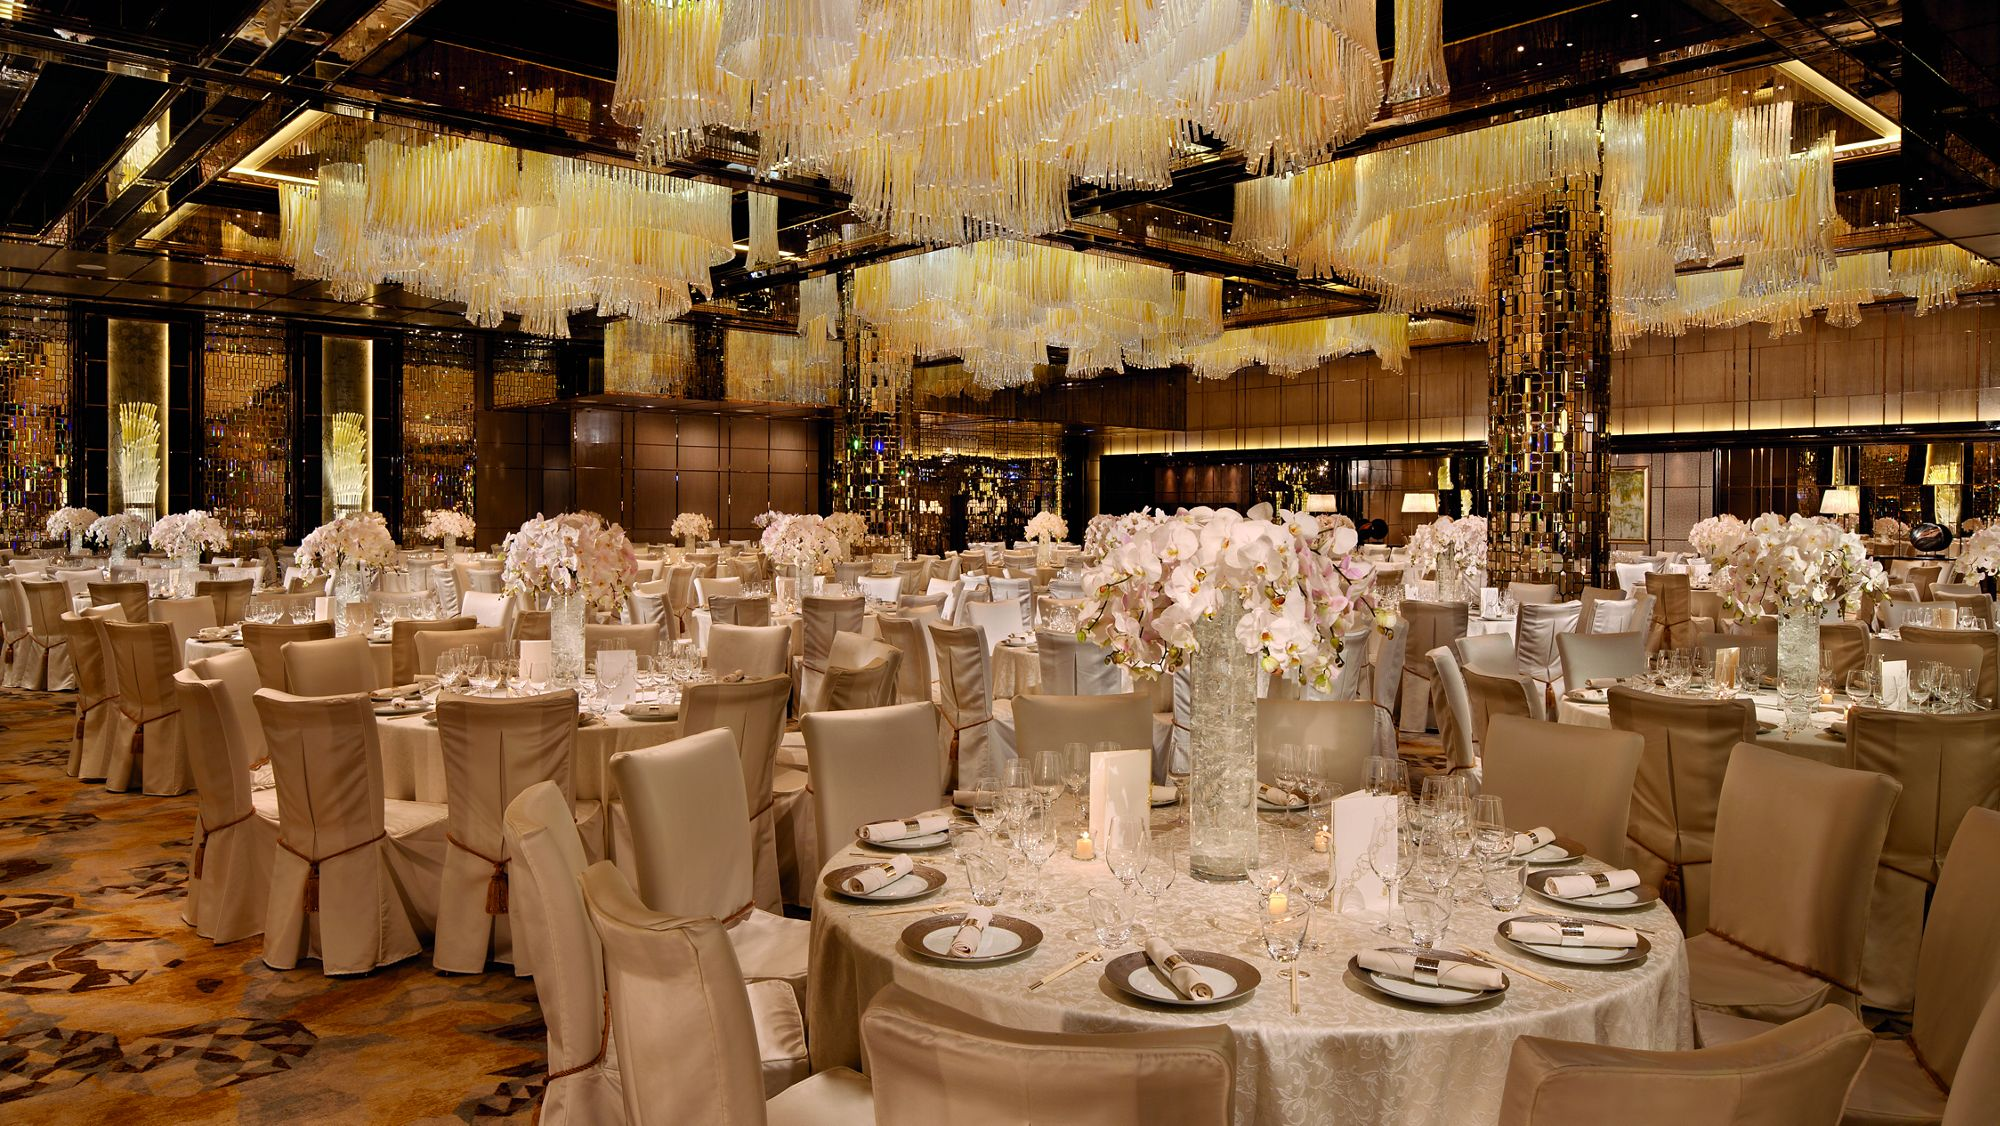 Hong Kong Wedding Package – Wedding Packages Hong Kong | The Ritz